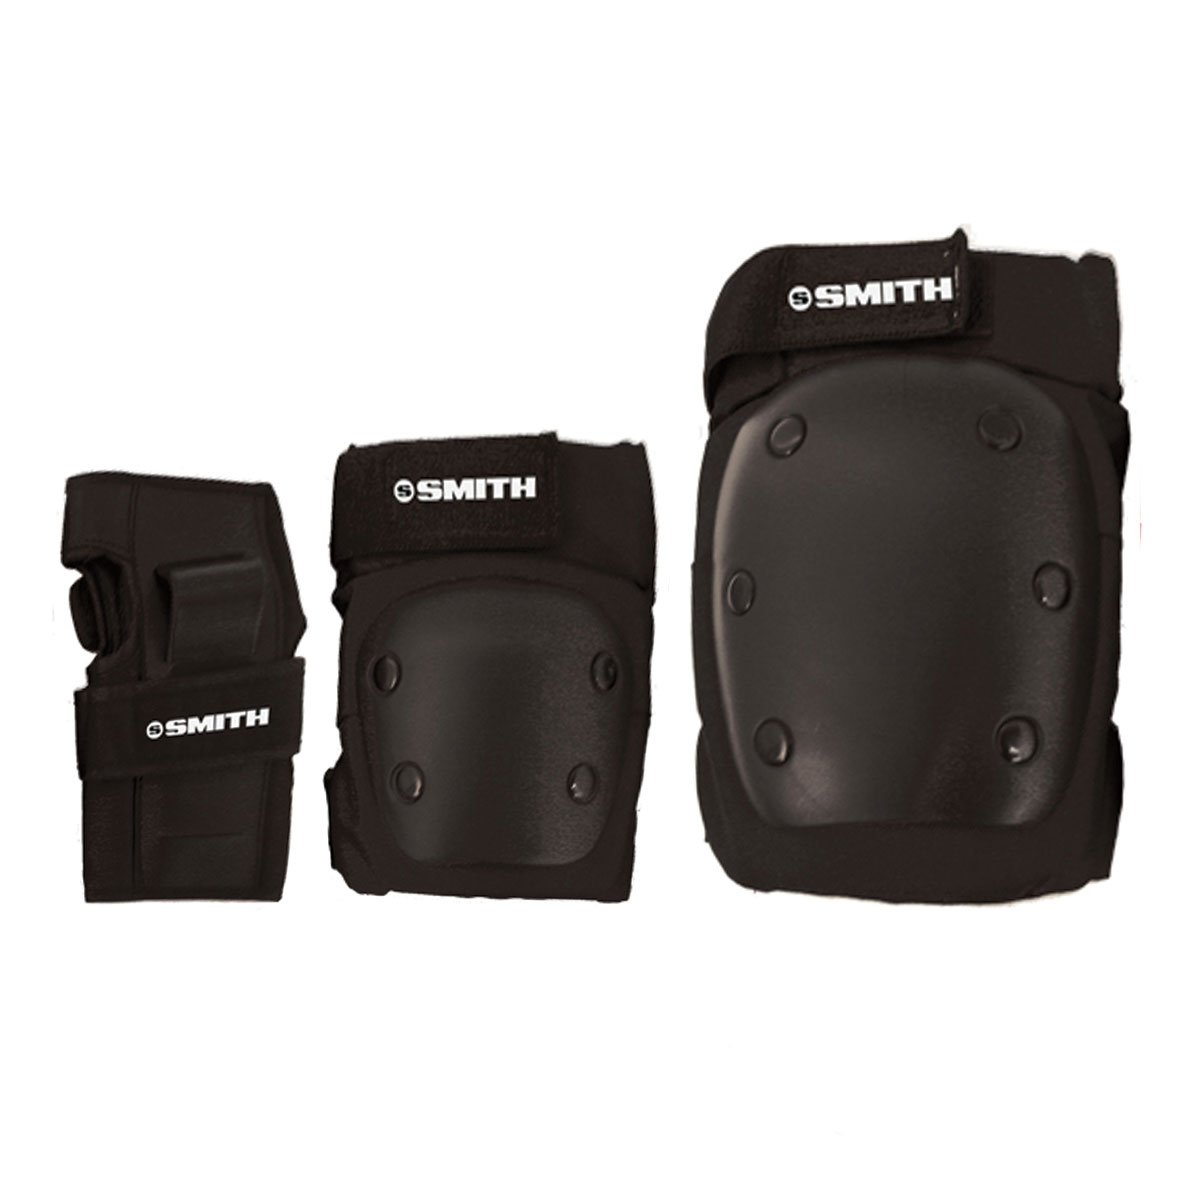 Smith Safety Gear Scabs Knee/Elbow/Wrist Guard Set (Pack of 3), Black, X-Large